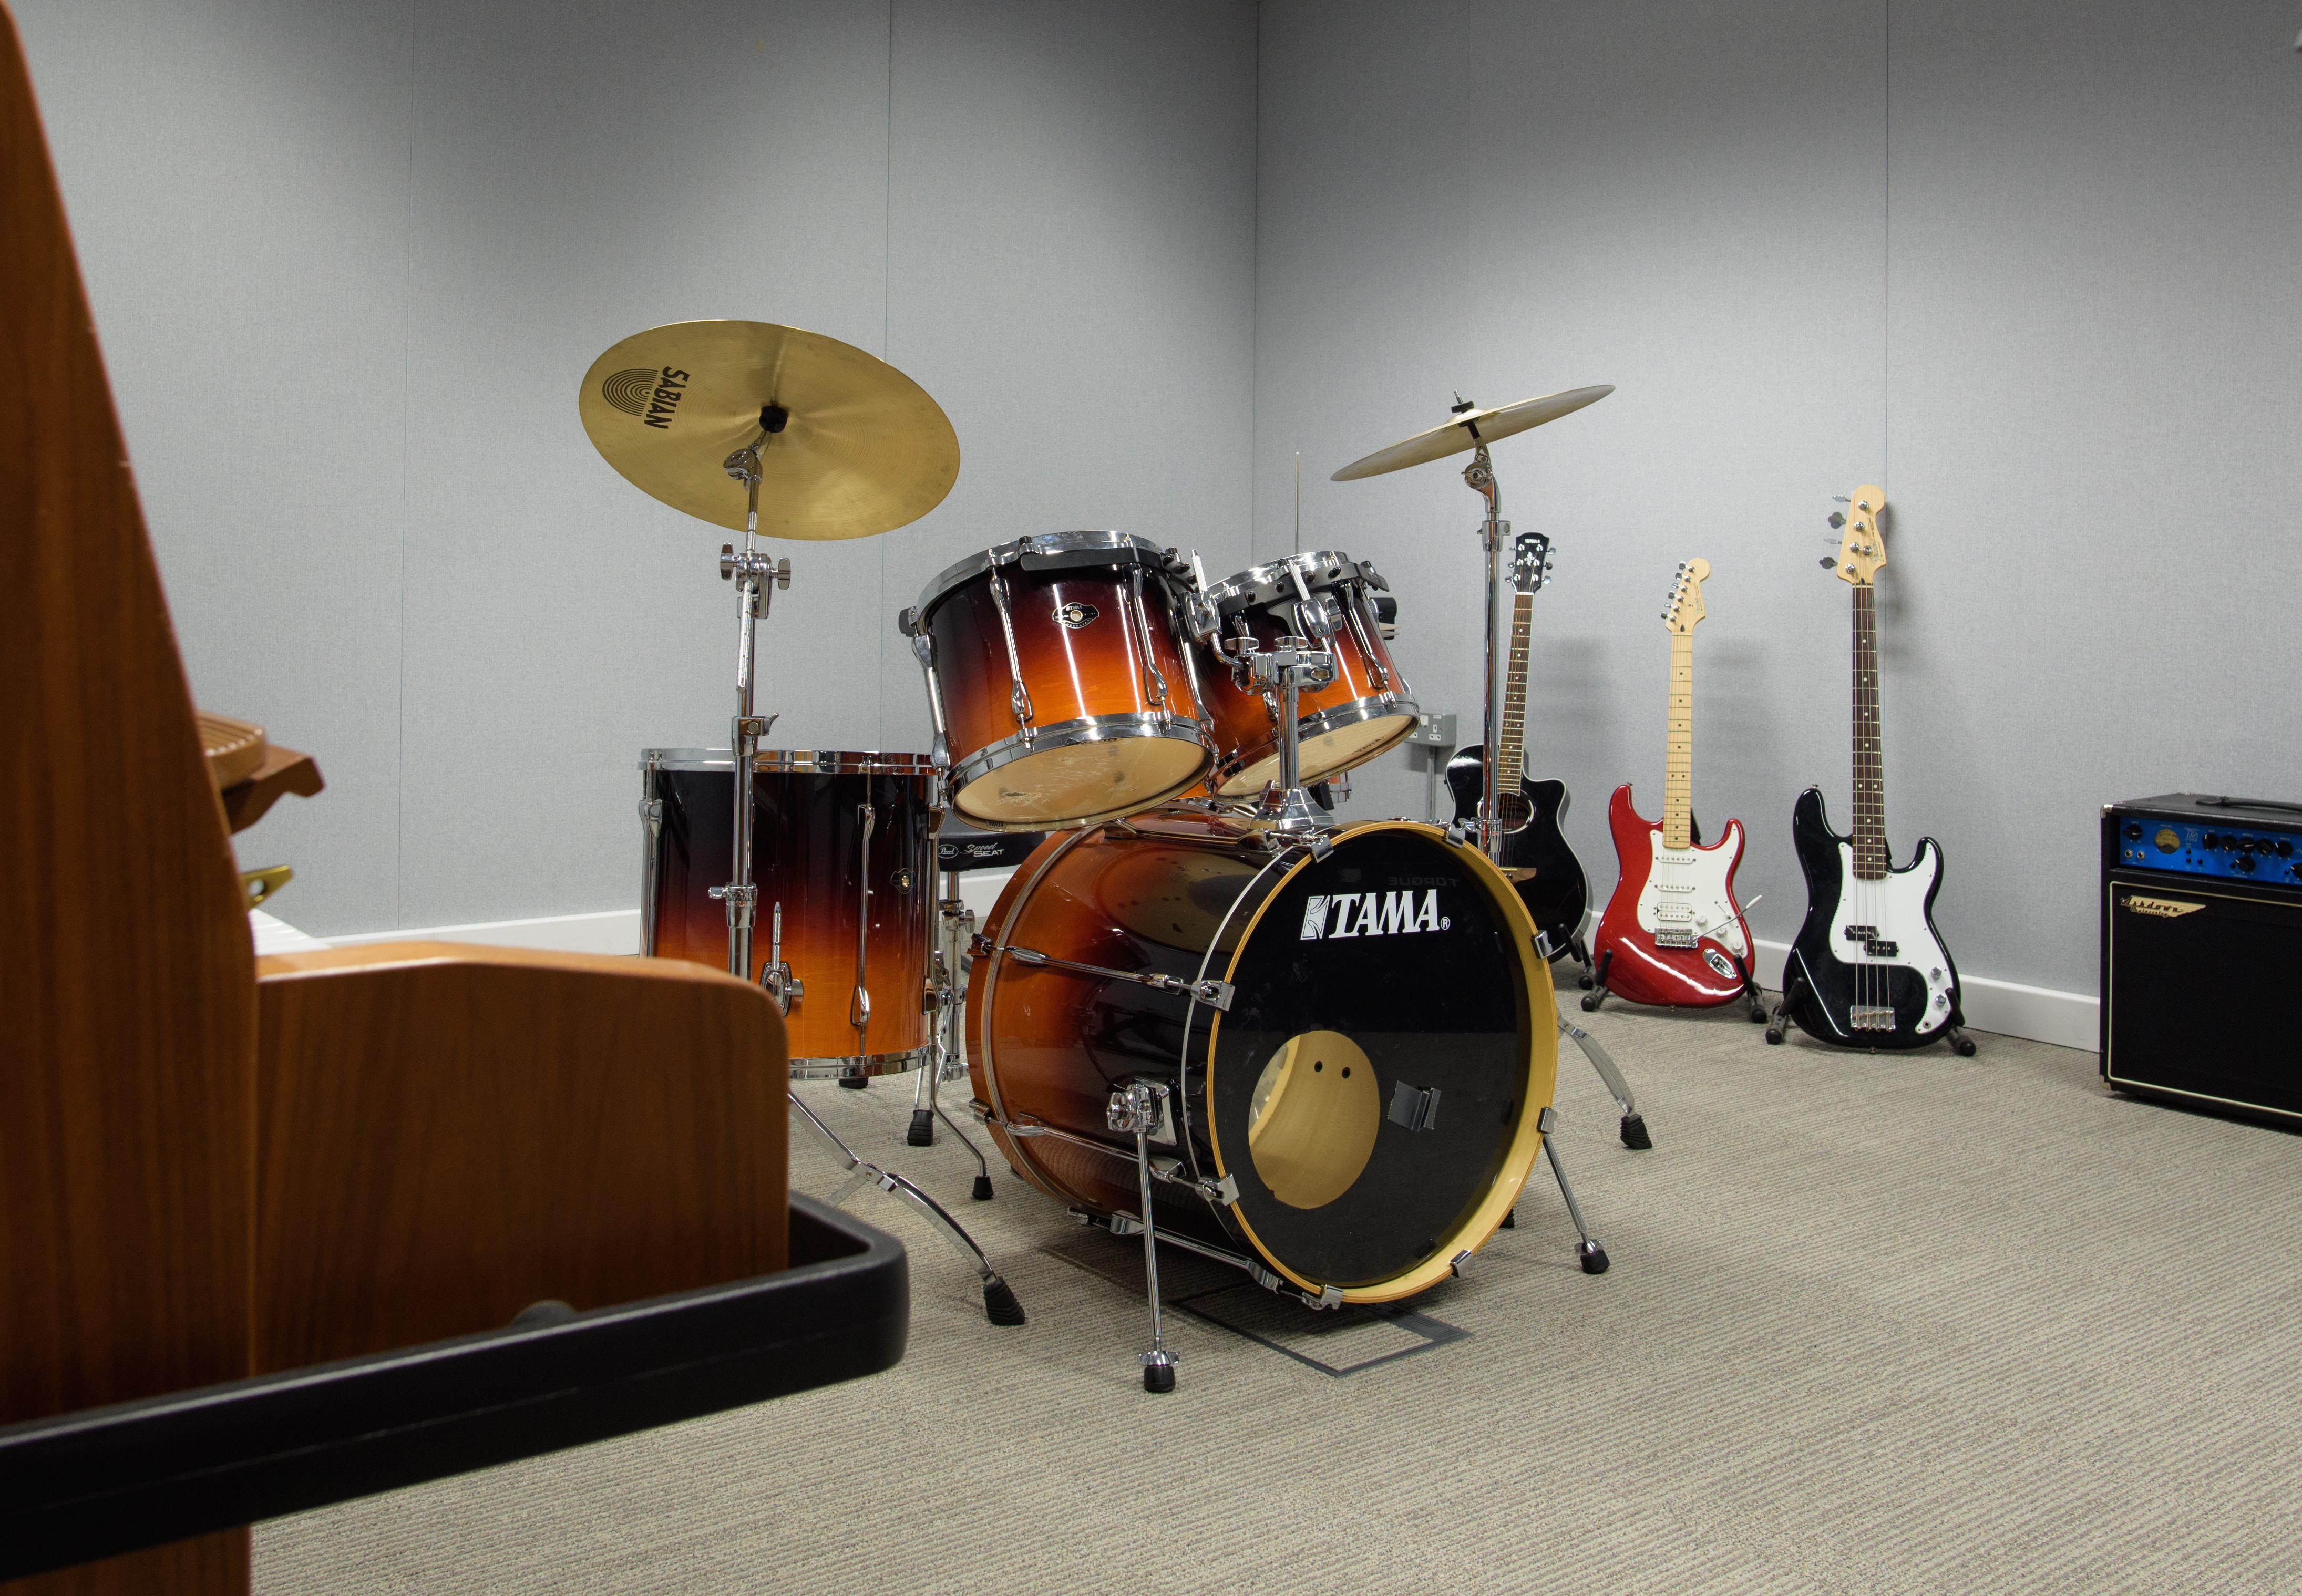 A drum set in the middle of a room